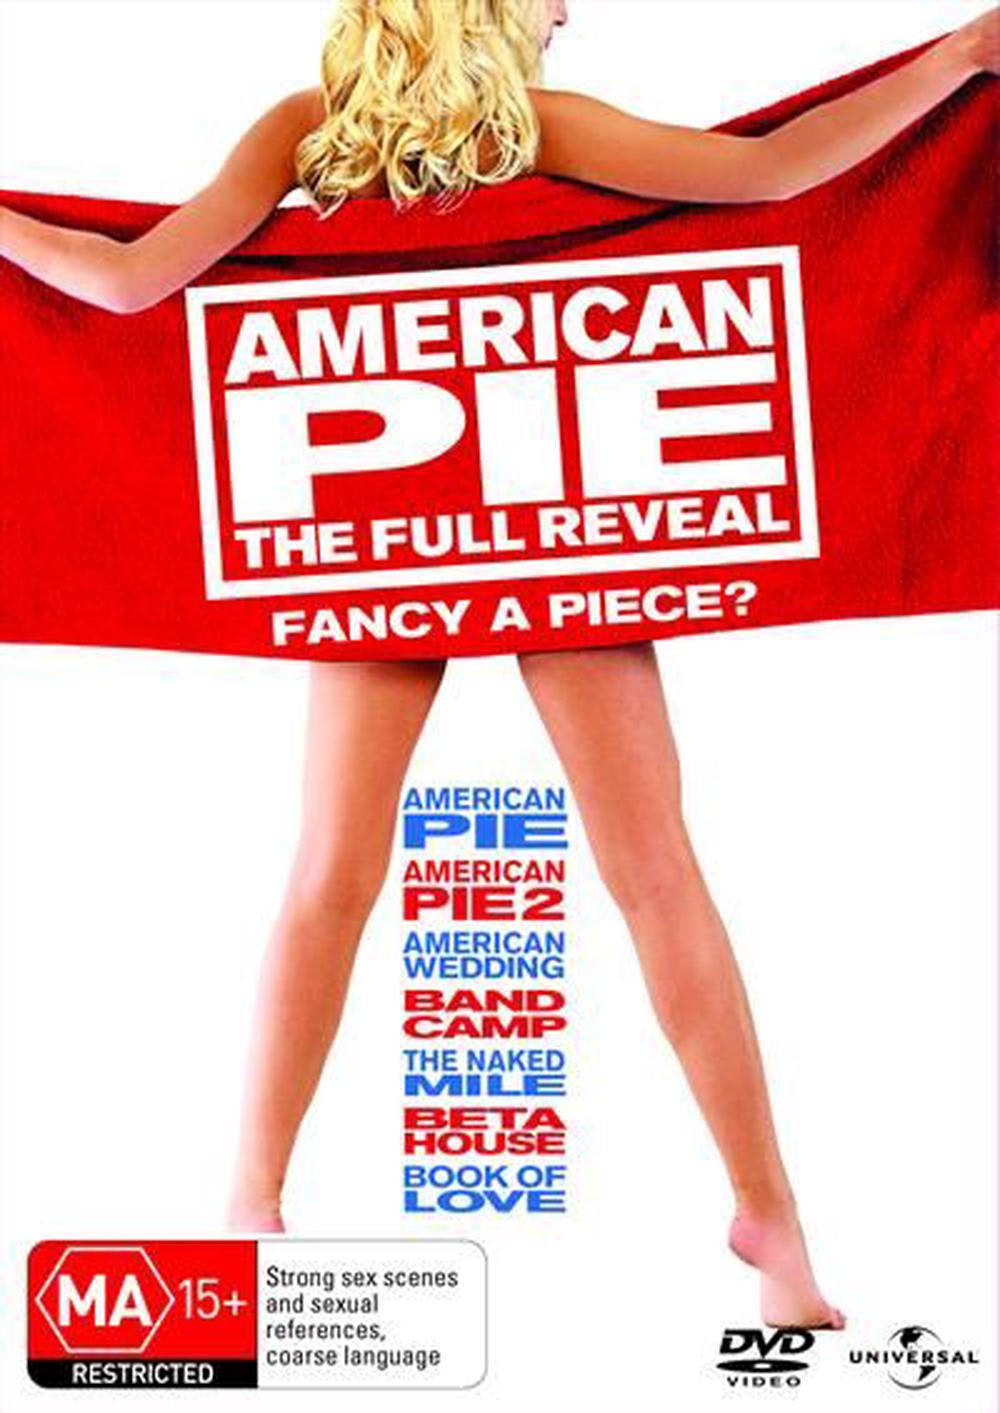 American Pie Presents Beta House Full Movie american pie: the full reveal (american pie 1-7), dvd | buy